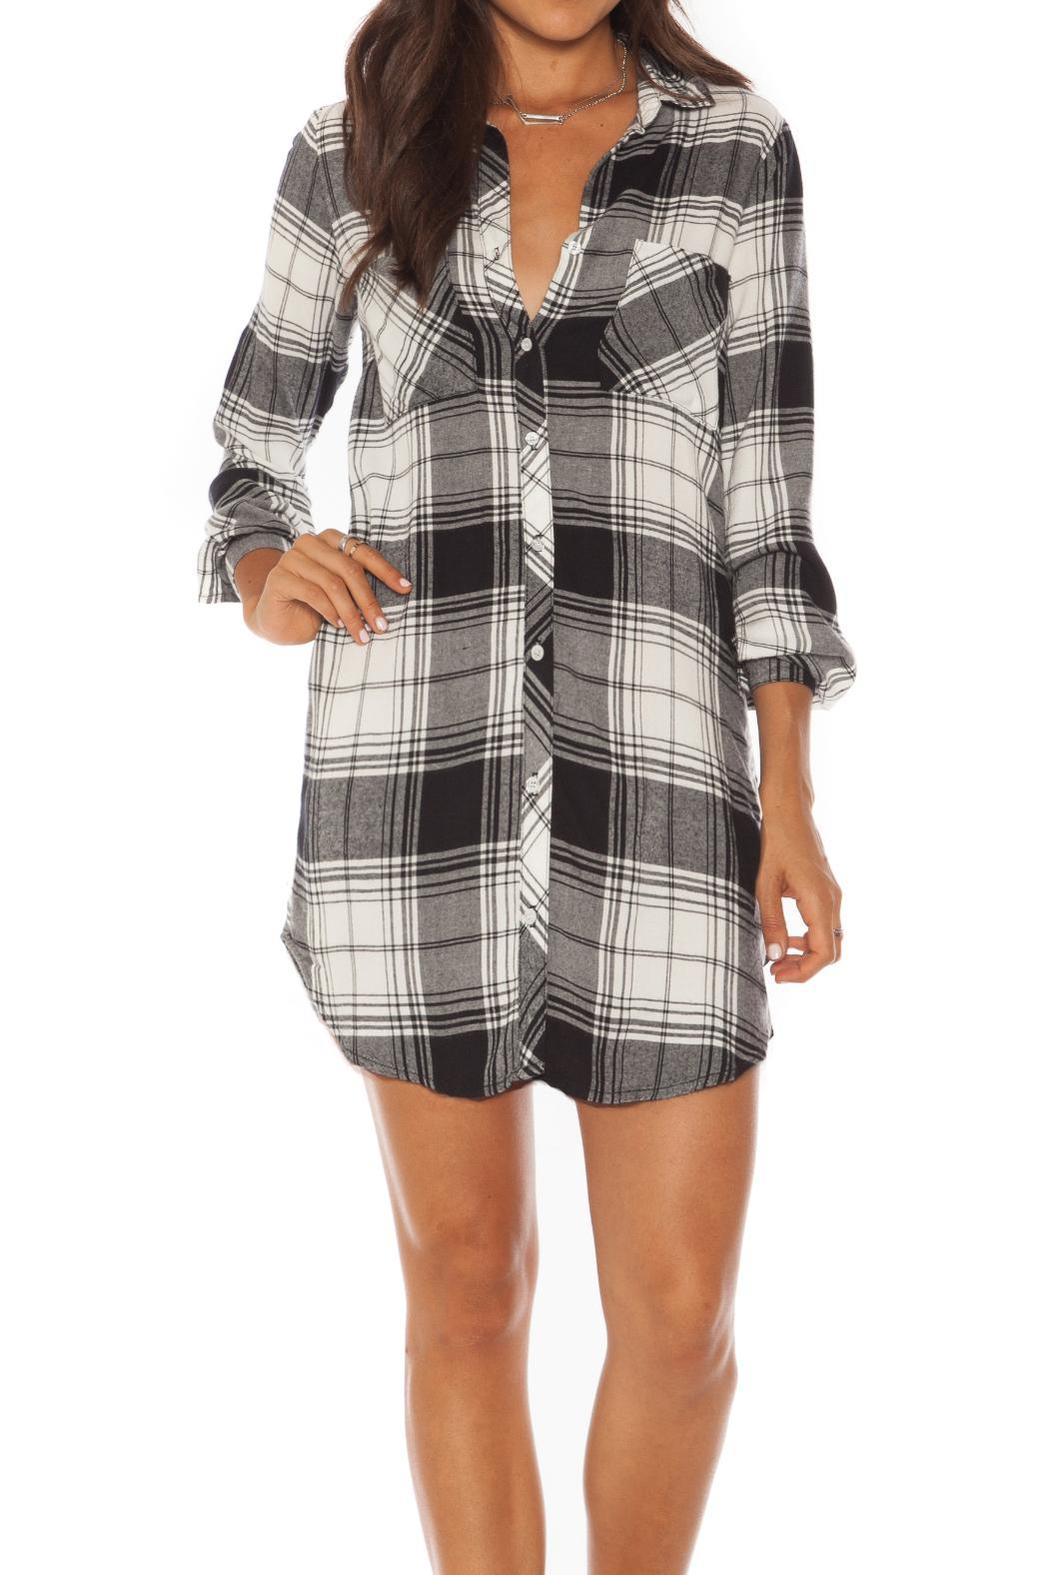 Bella dahl hipster plaid dress from canada by red ribbon for Bella dahl plaid shirt